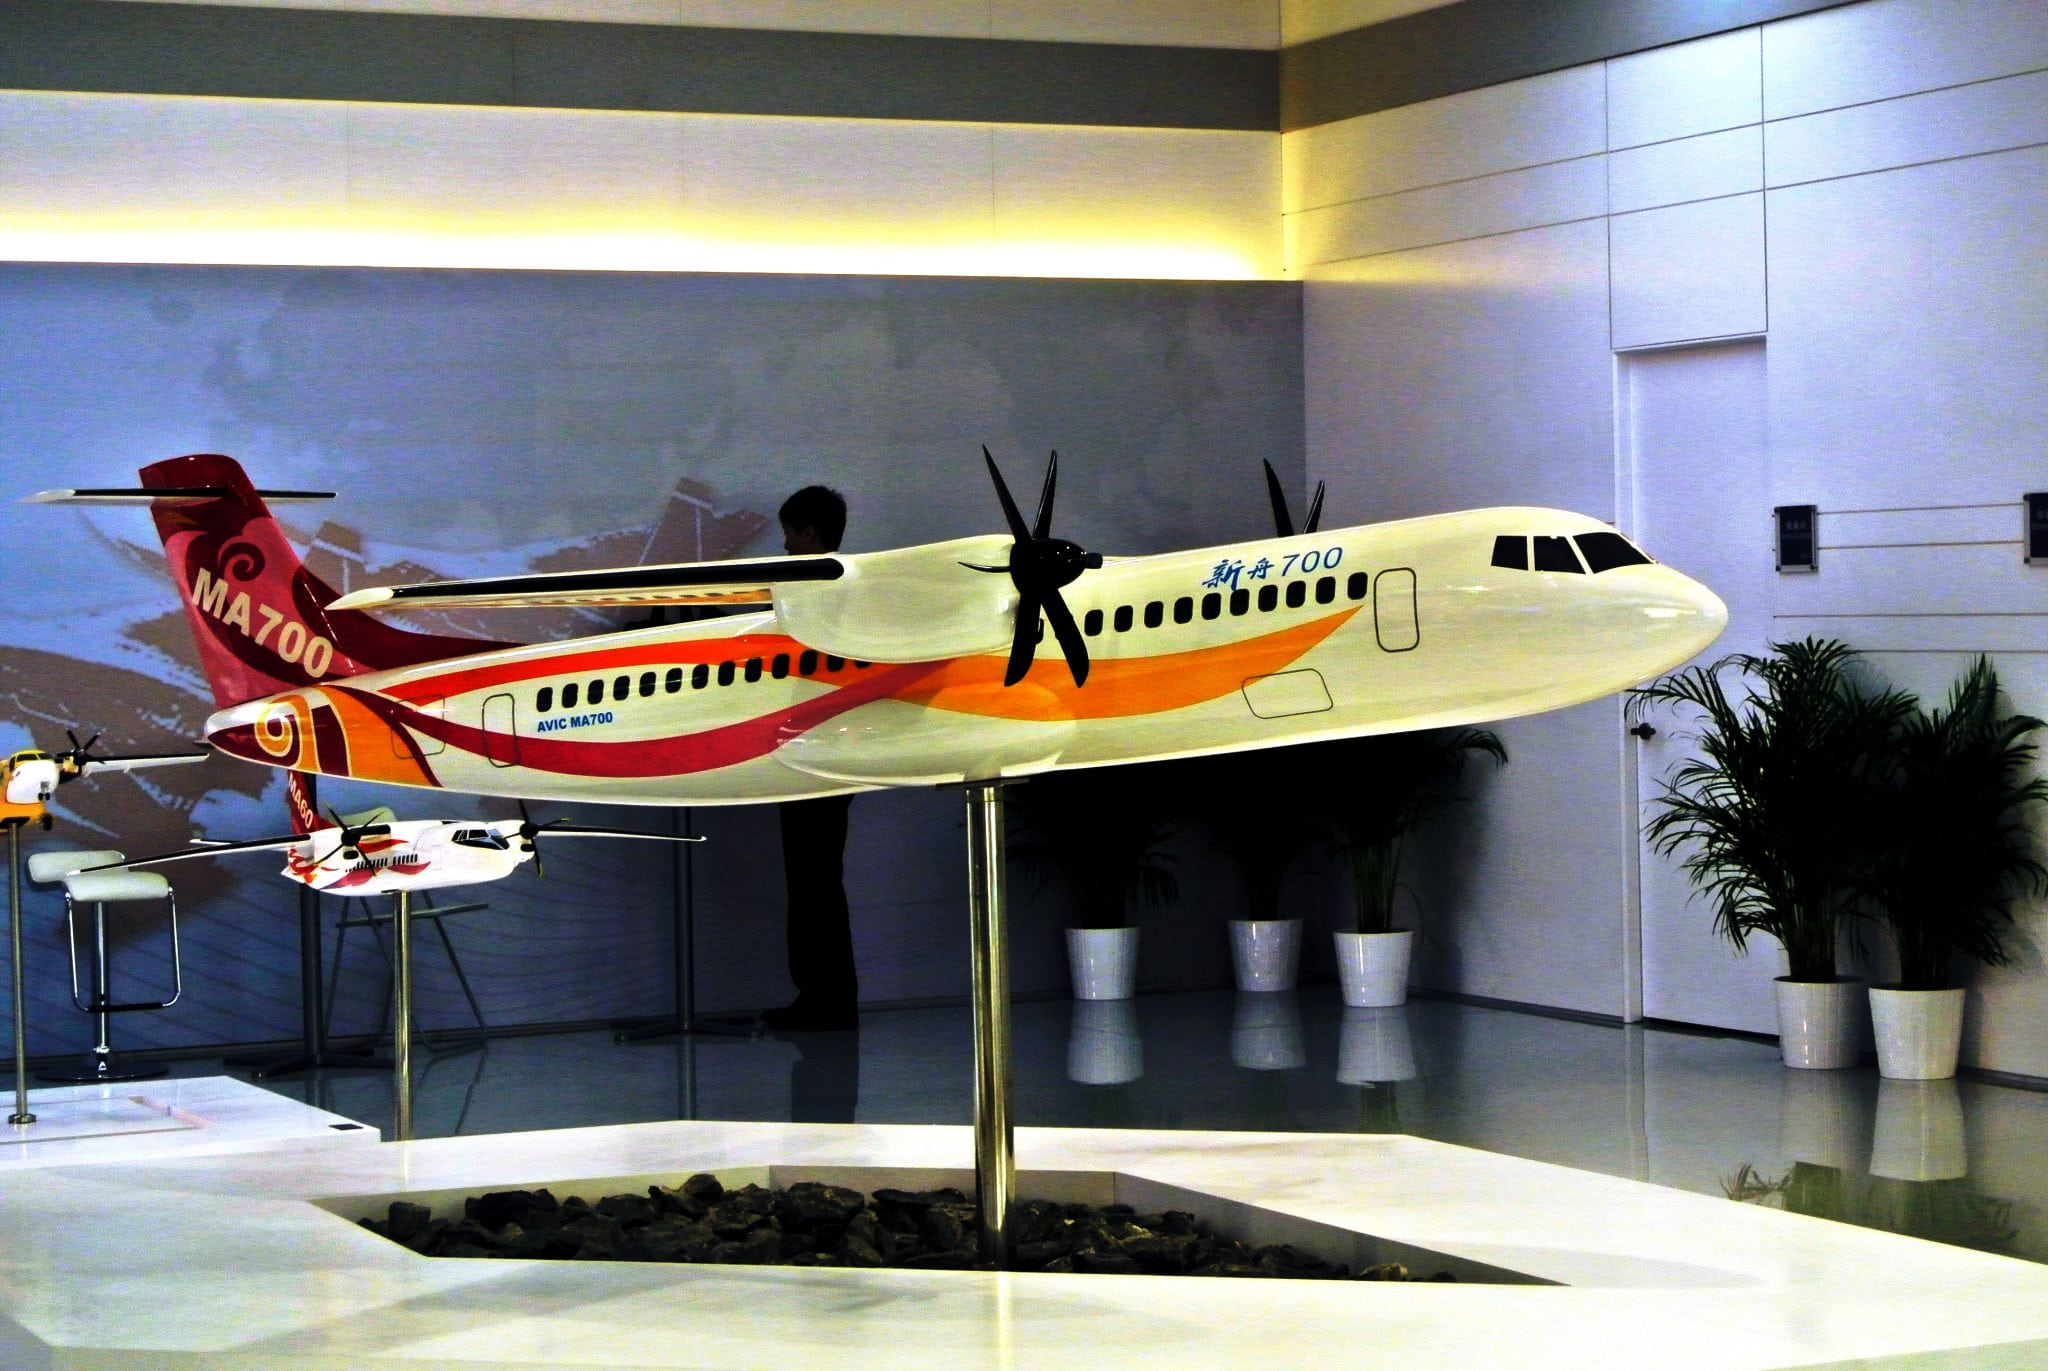 Model of AVIC's MA700 on display